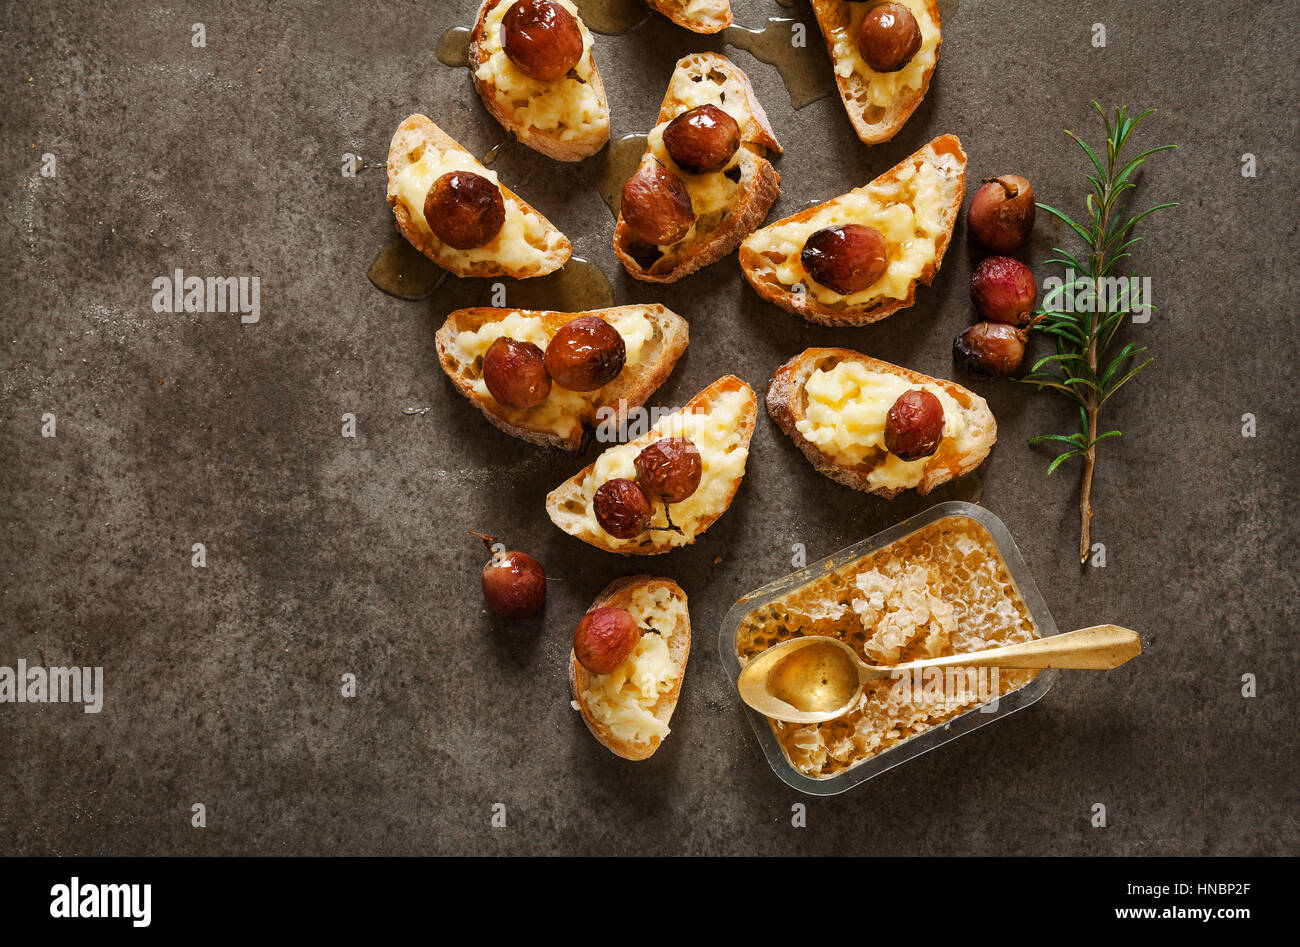 hors doeuvres with baked camembert, grapes and honey on grey stone background - Stock Image